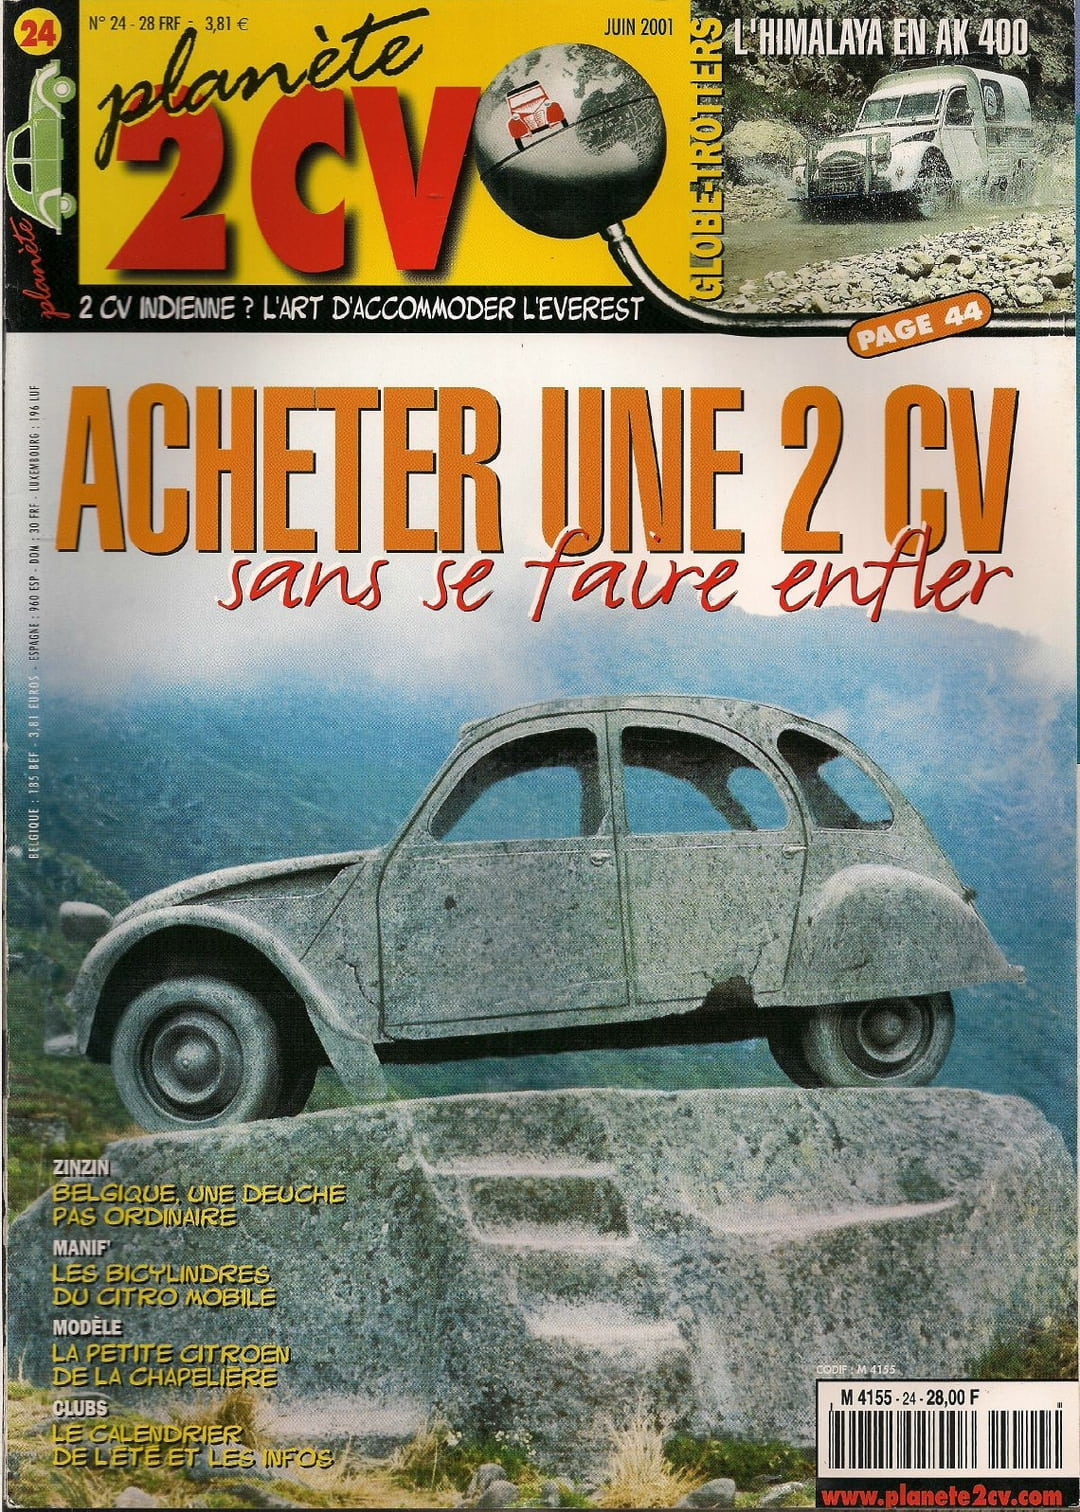 planete 2cv n 24 acheter une 2cv sans se faire enfler juin 2001 ebay. Black Bedroom Furniture Sets. Home Design Ideas